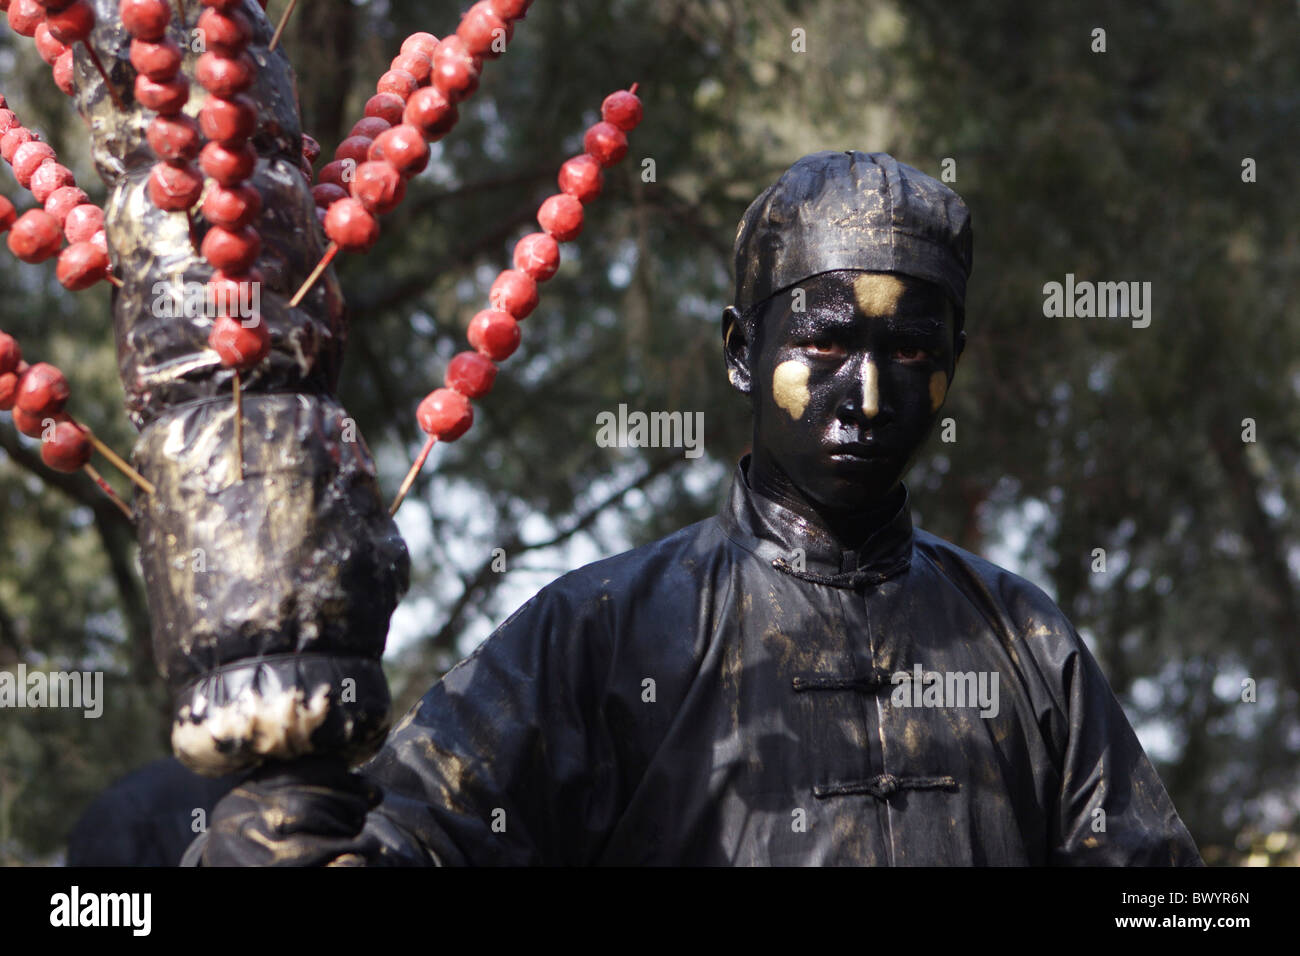 A mime performing during Ditan Temple Fair, Spring Festival, Beijing, China - Stock Image